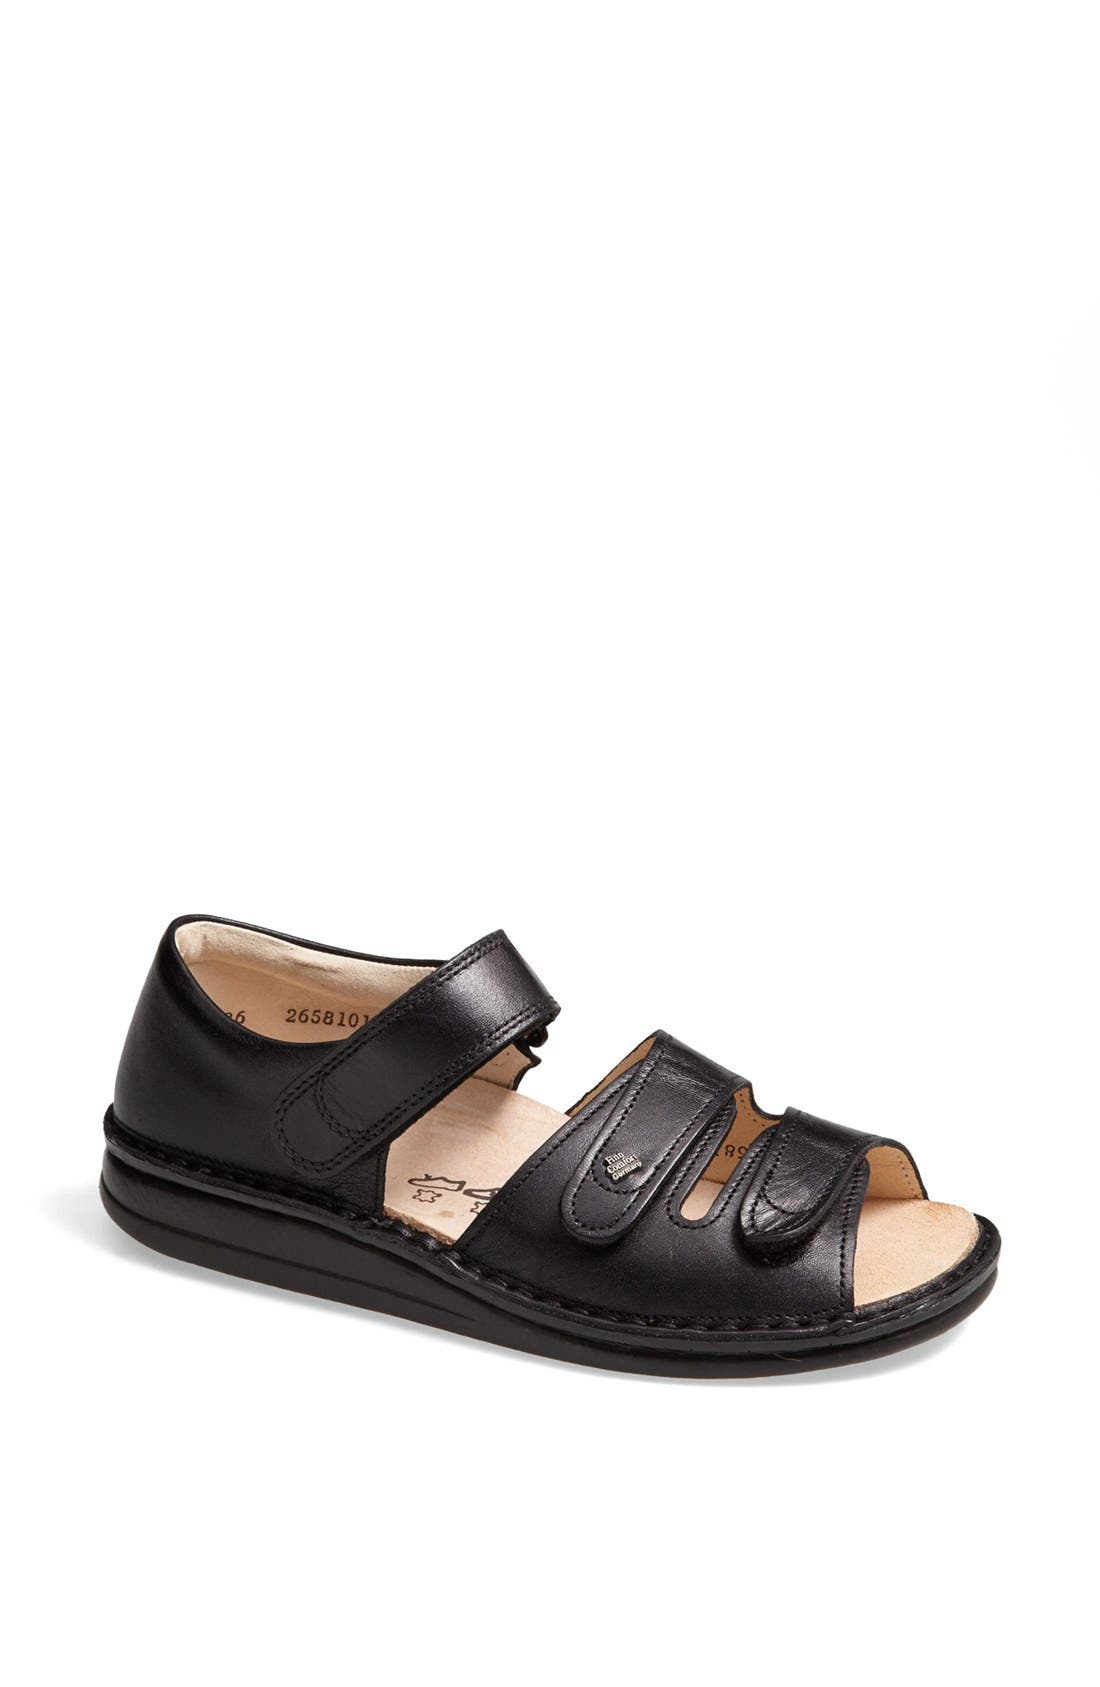 Main Image - Finn Comfort 'Baltrum 1518' Leather Sandal